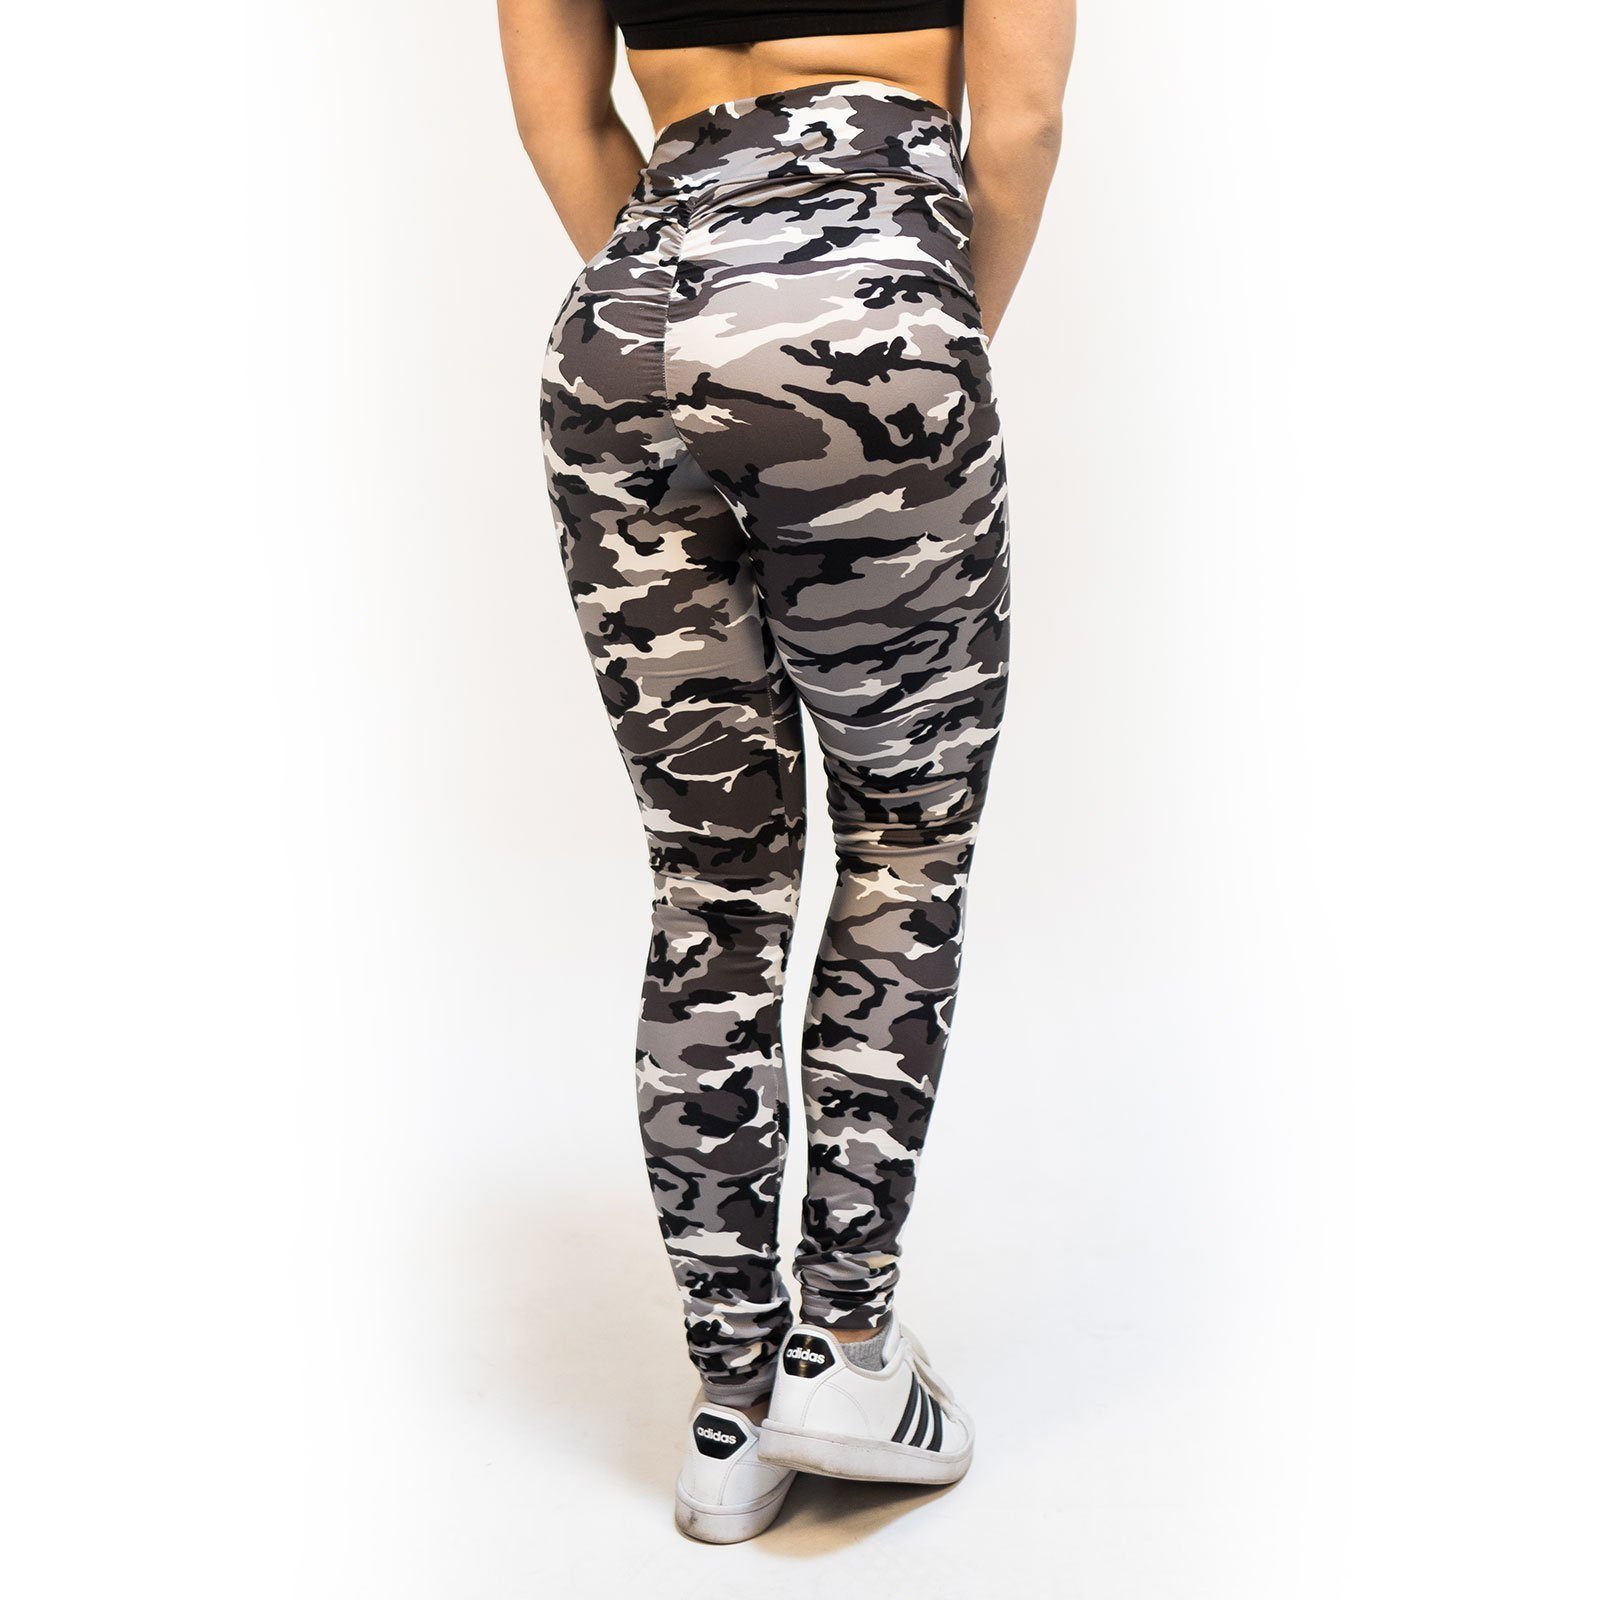 celestial-bodiez-lunar-series-high-waist-black-camo-leggings-rear